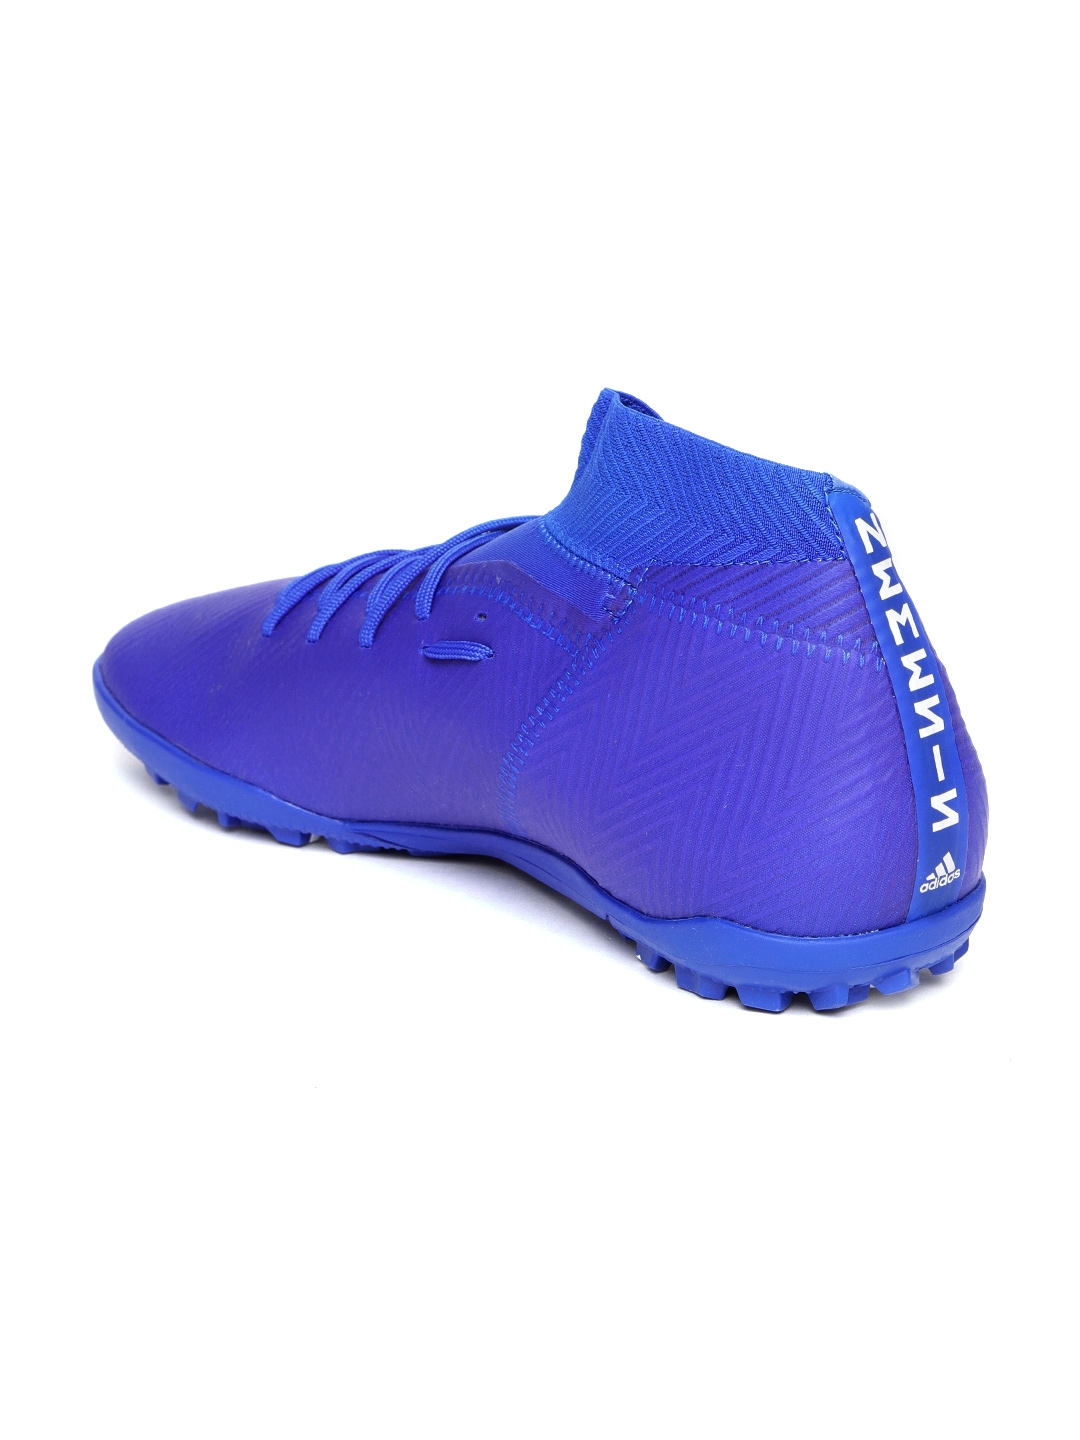 outlet store sale 576c3 18179 ADIDAS Men Blue NEMEZIZ Tango 18.3 Turf Boots Football Shoes